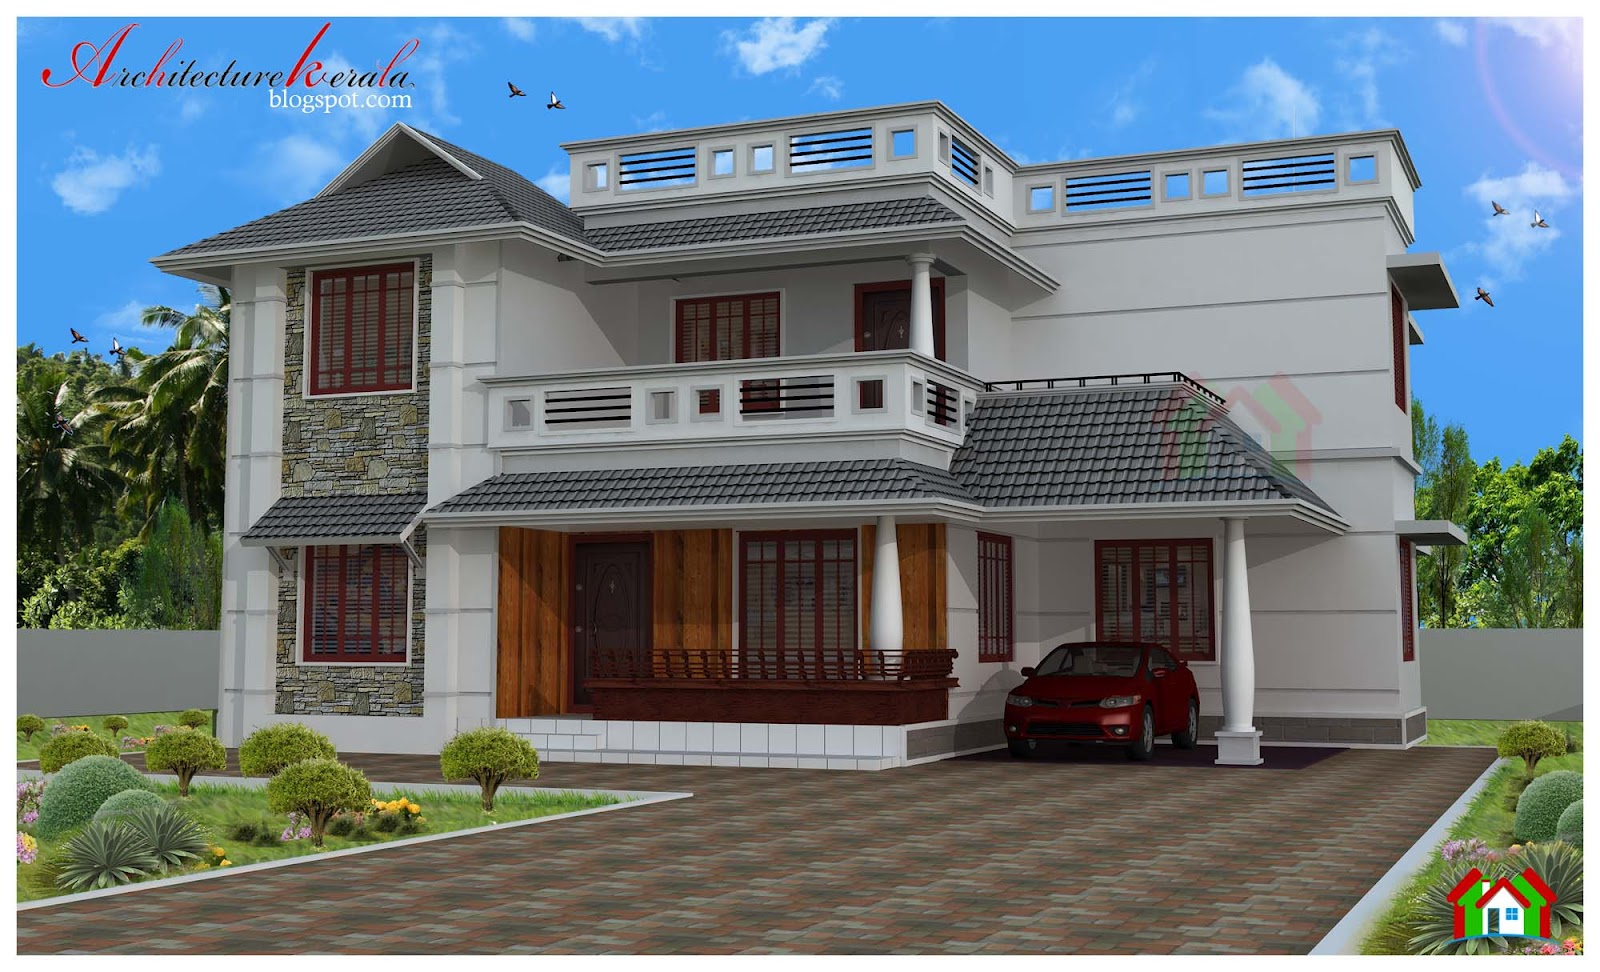 Architecture kerala four bed room house plan for In home design